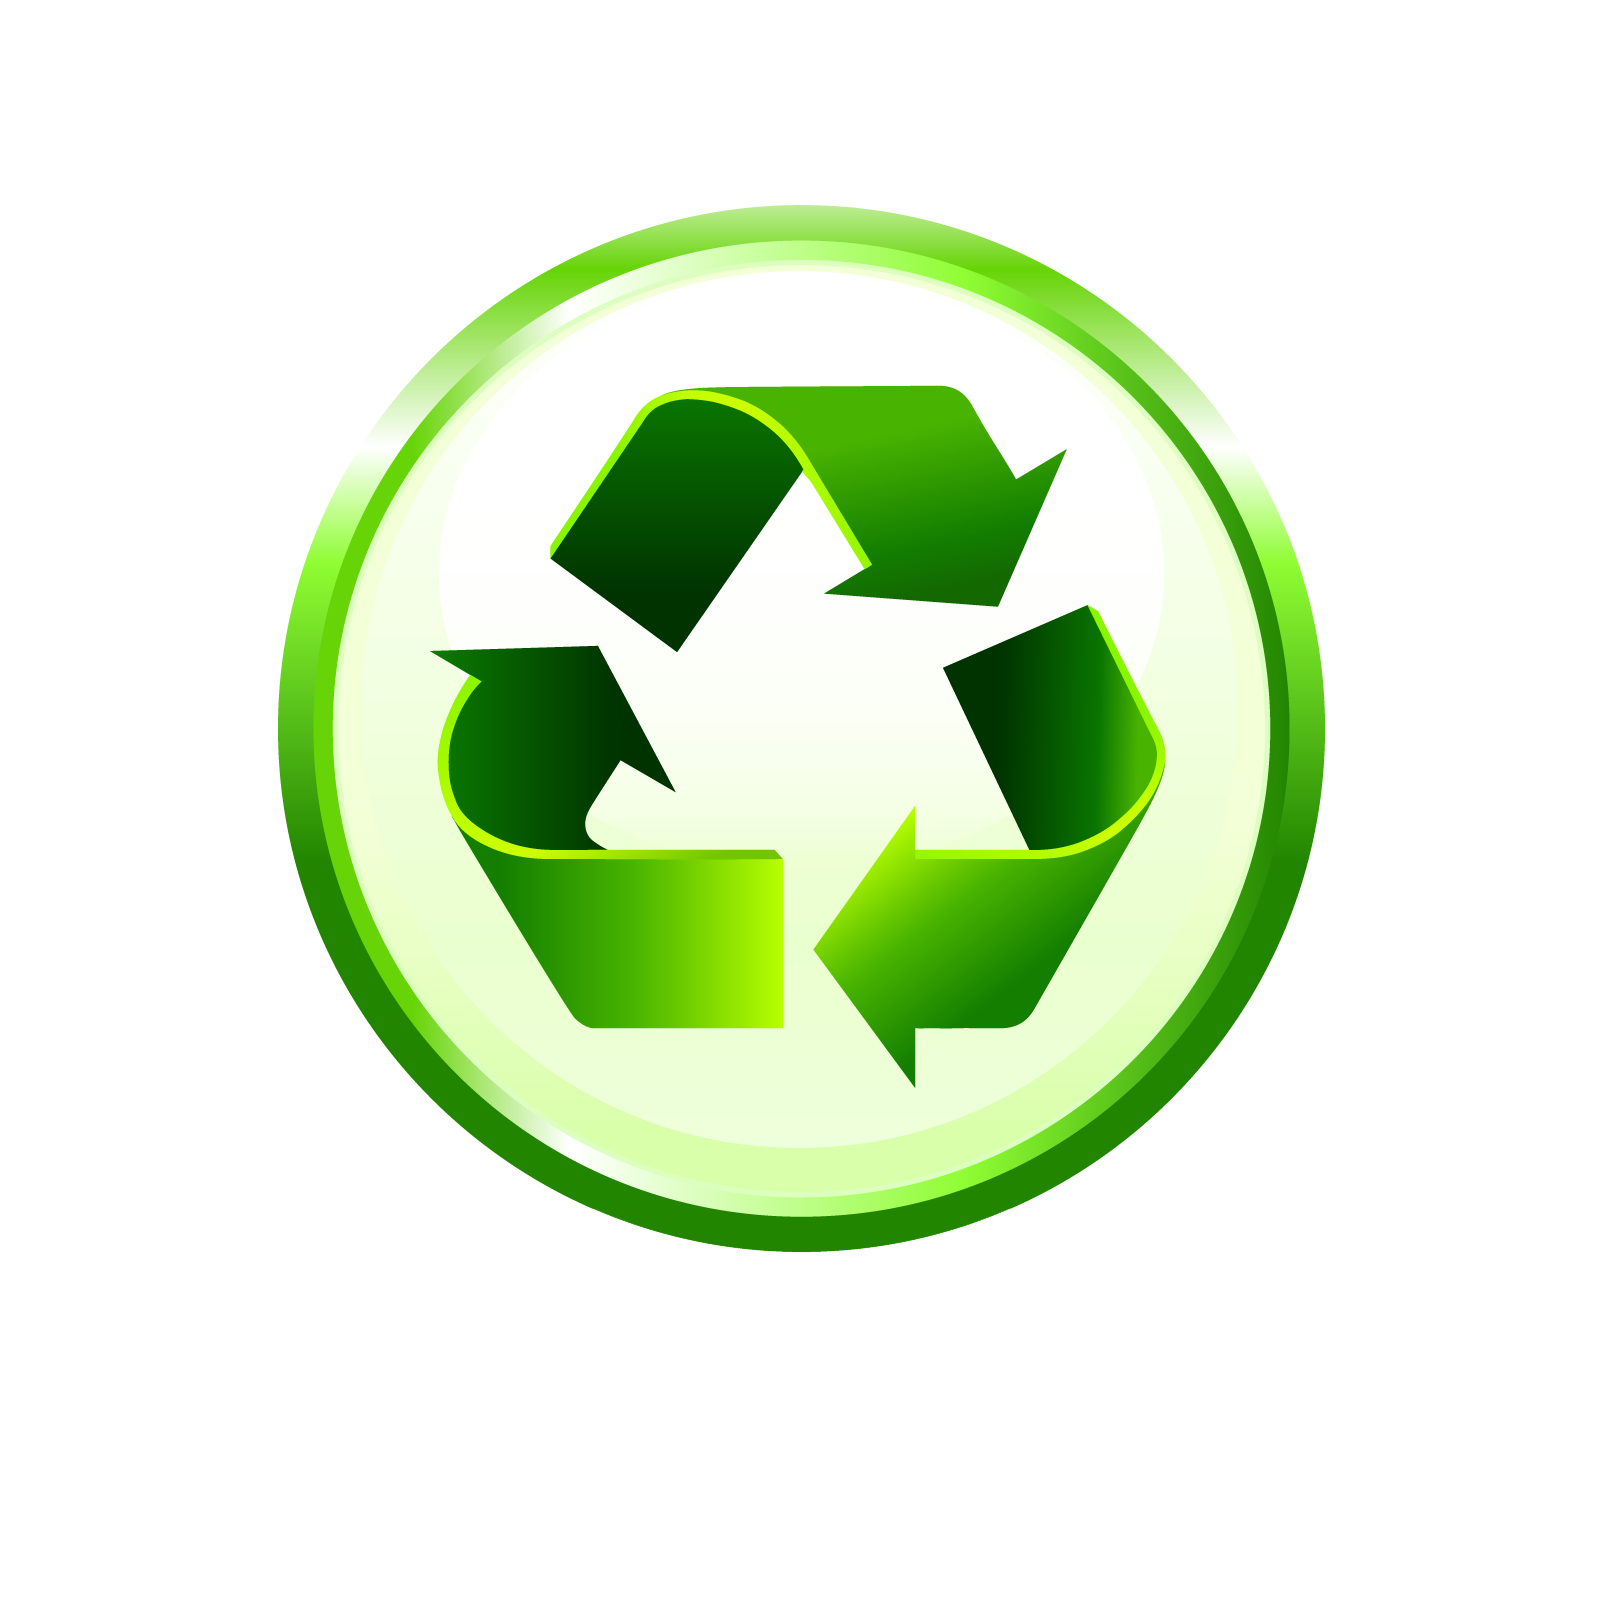 Recycle Logo Png - Cliparts.co